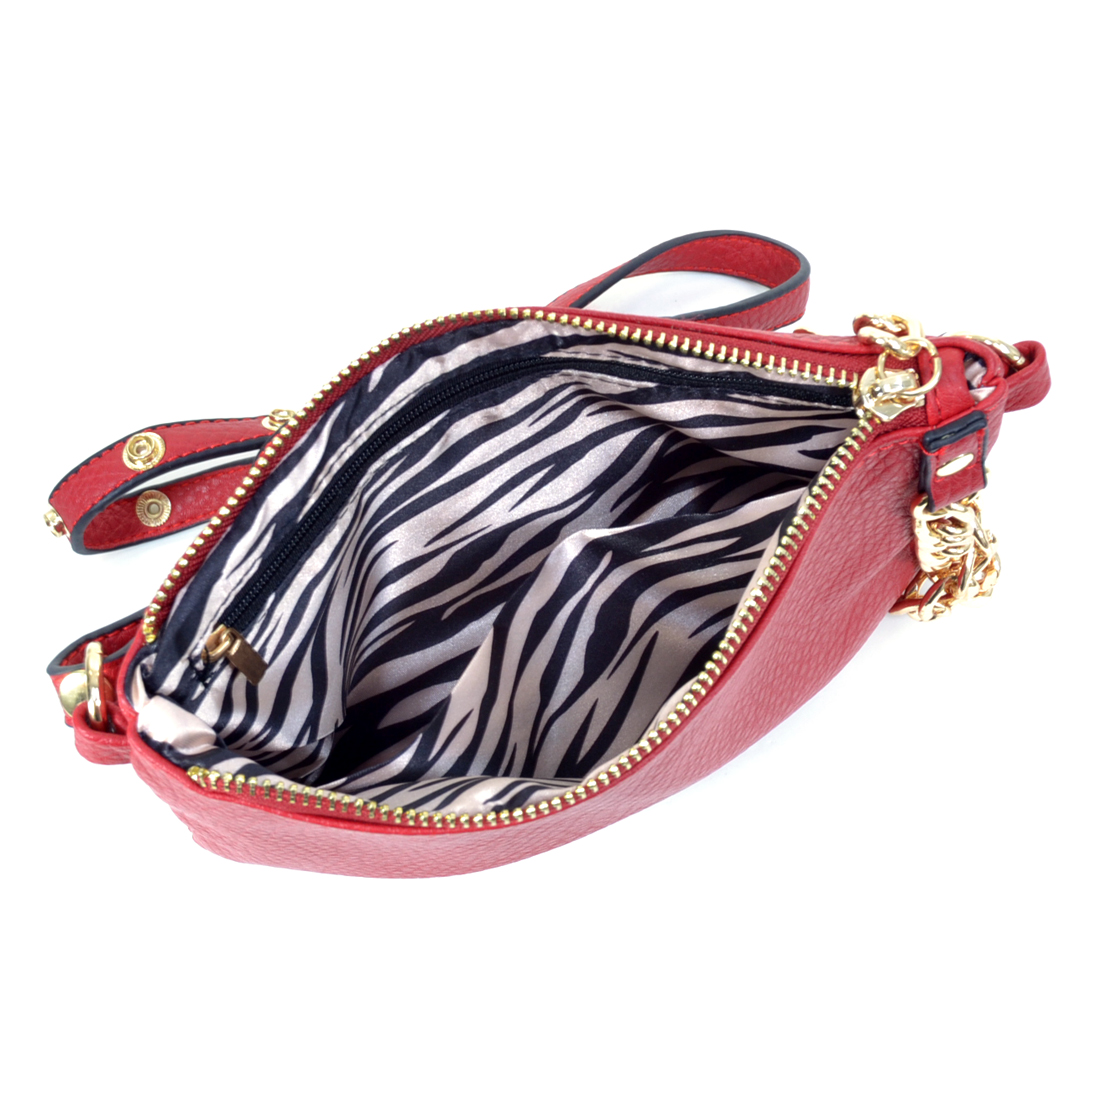 Gold Tone Chain Handle Shoulder Bag with Zebra Print Interior